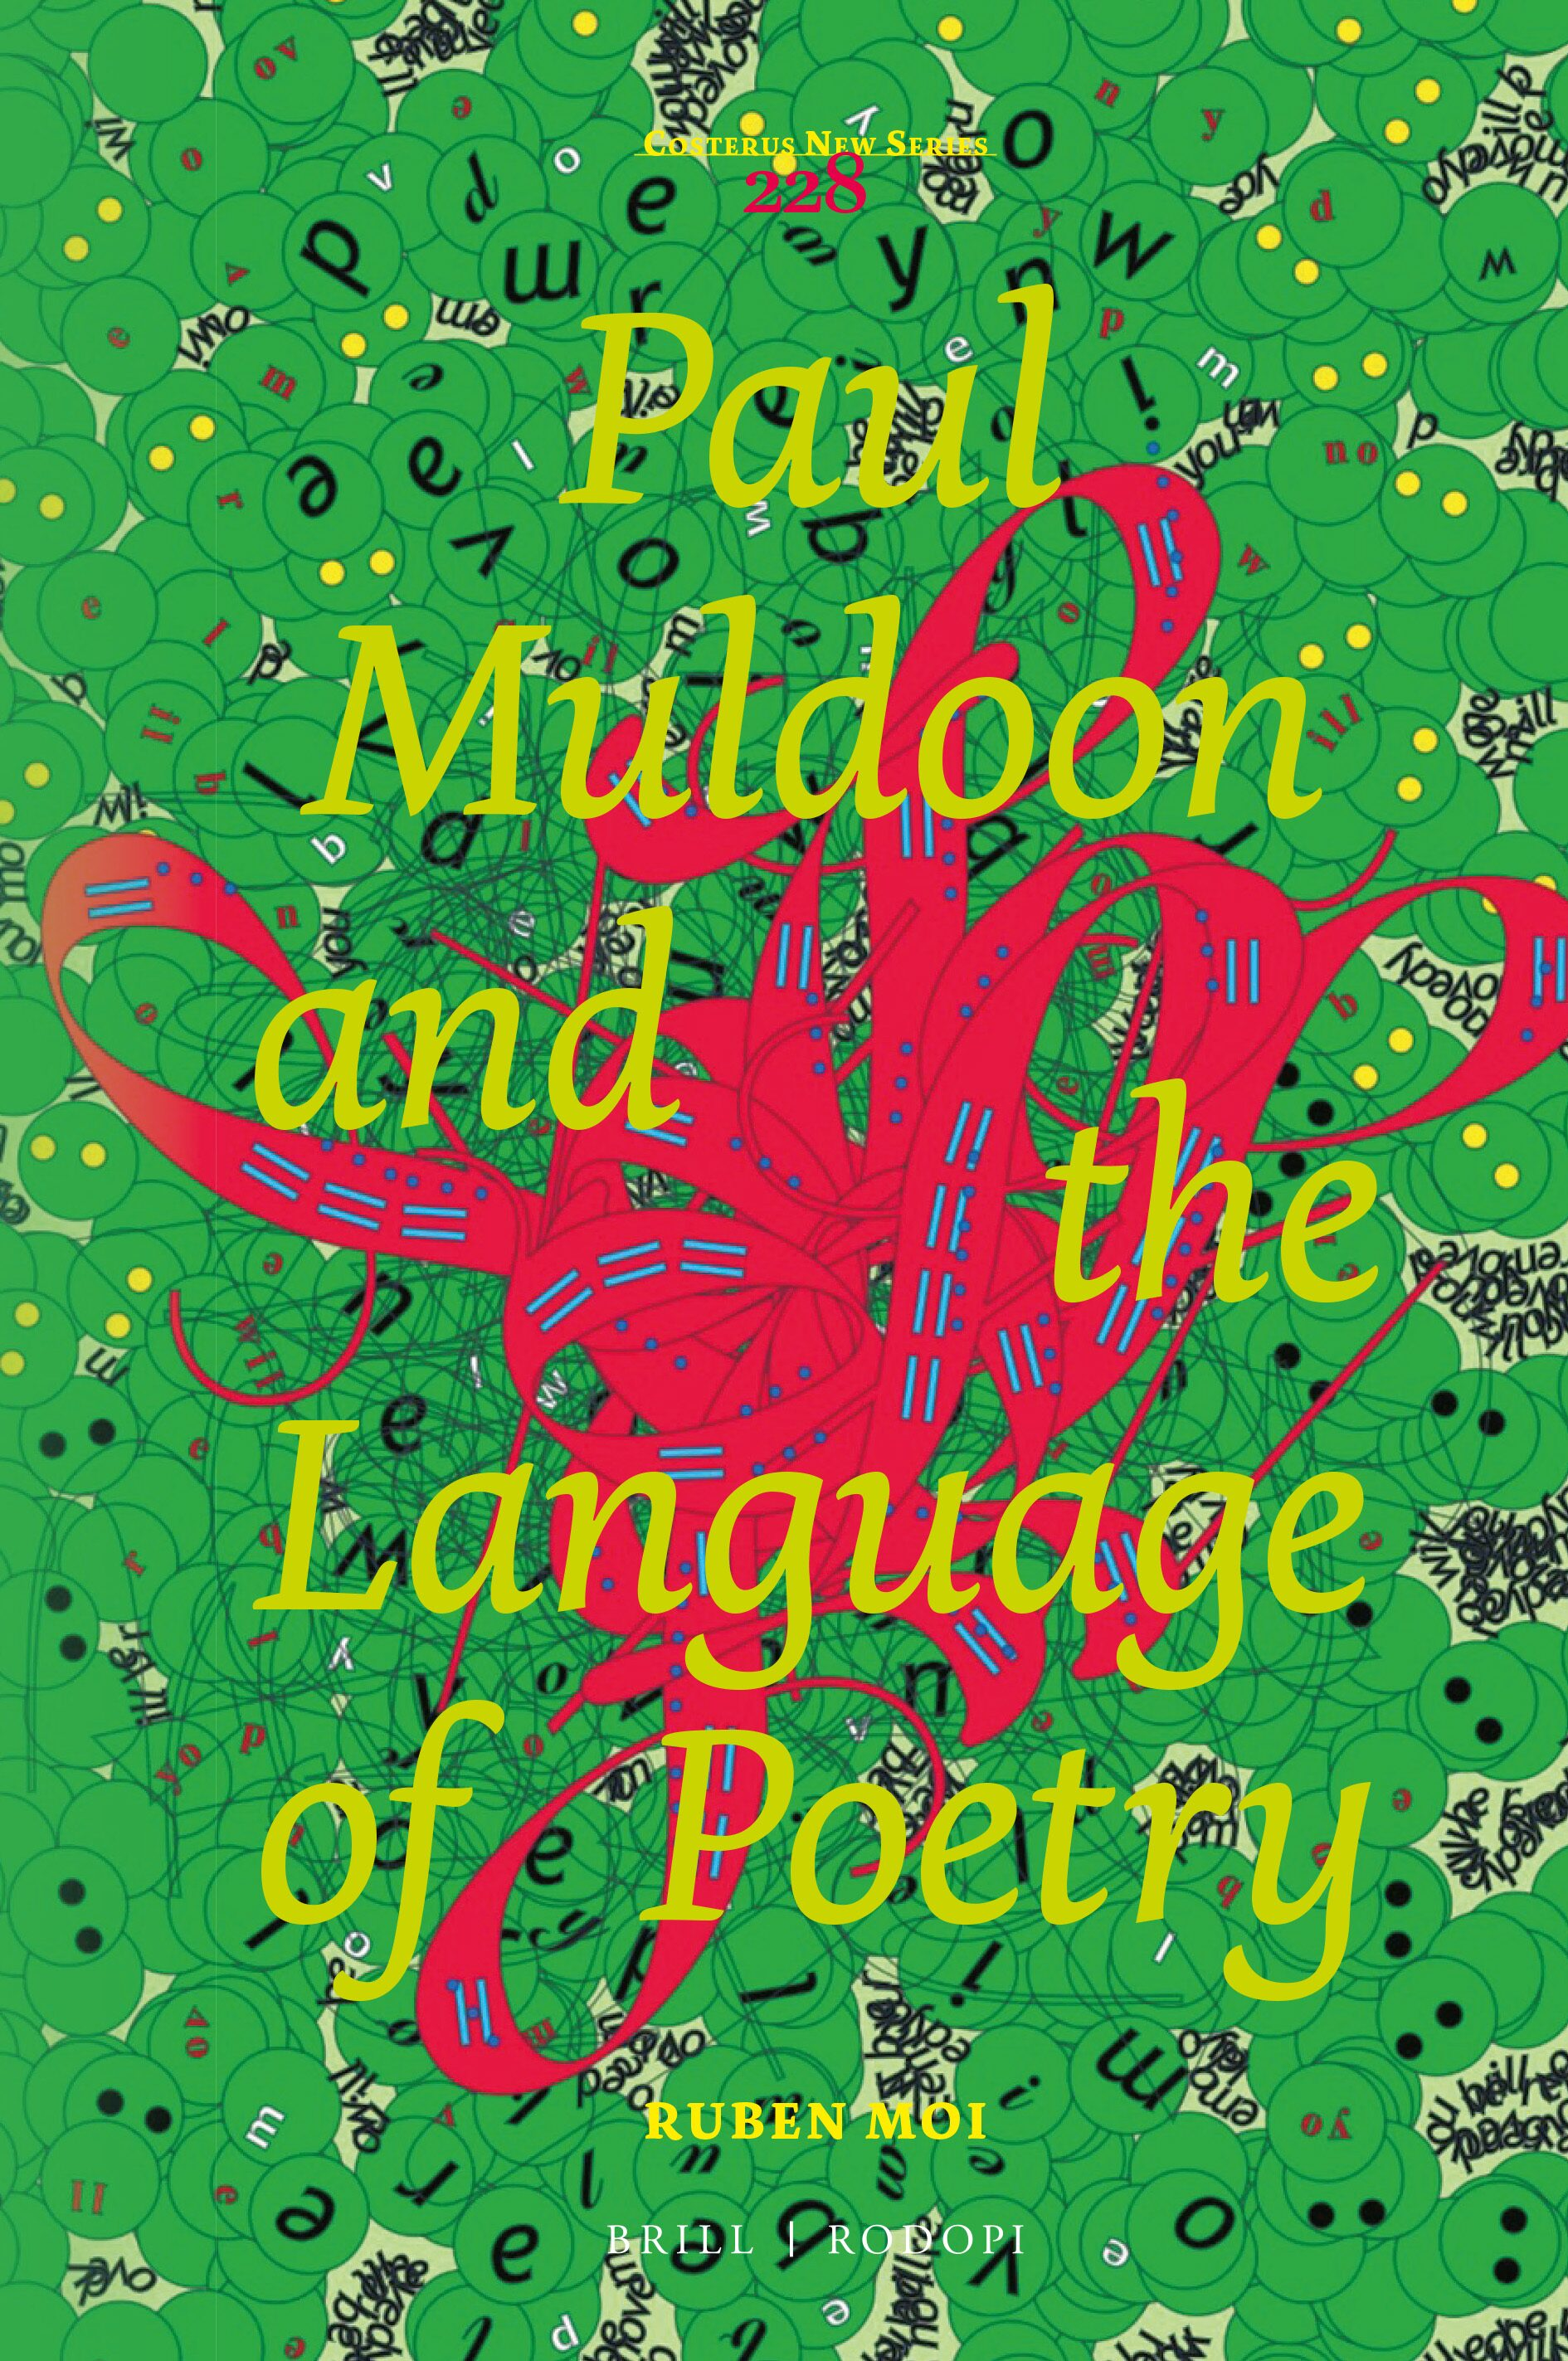 Meeting The British In Paul Muldoon And The Language Of Poetry